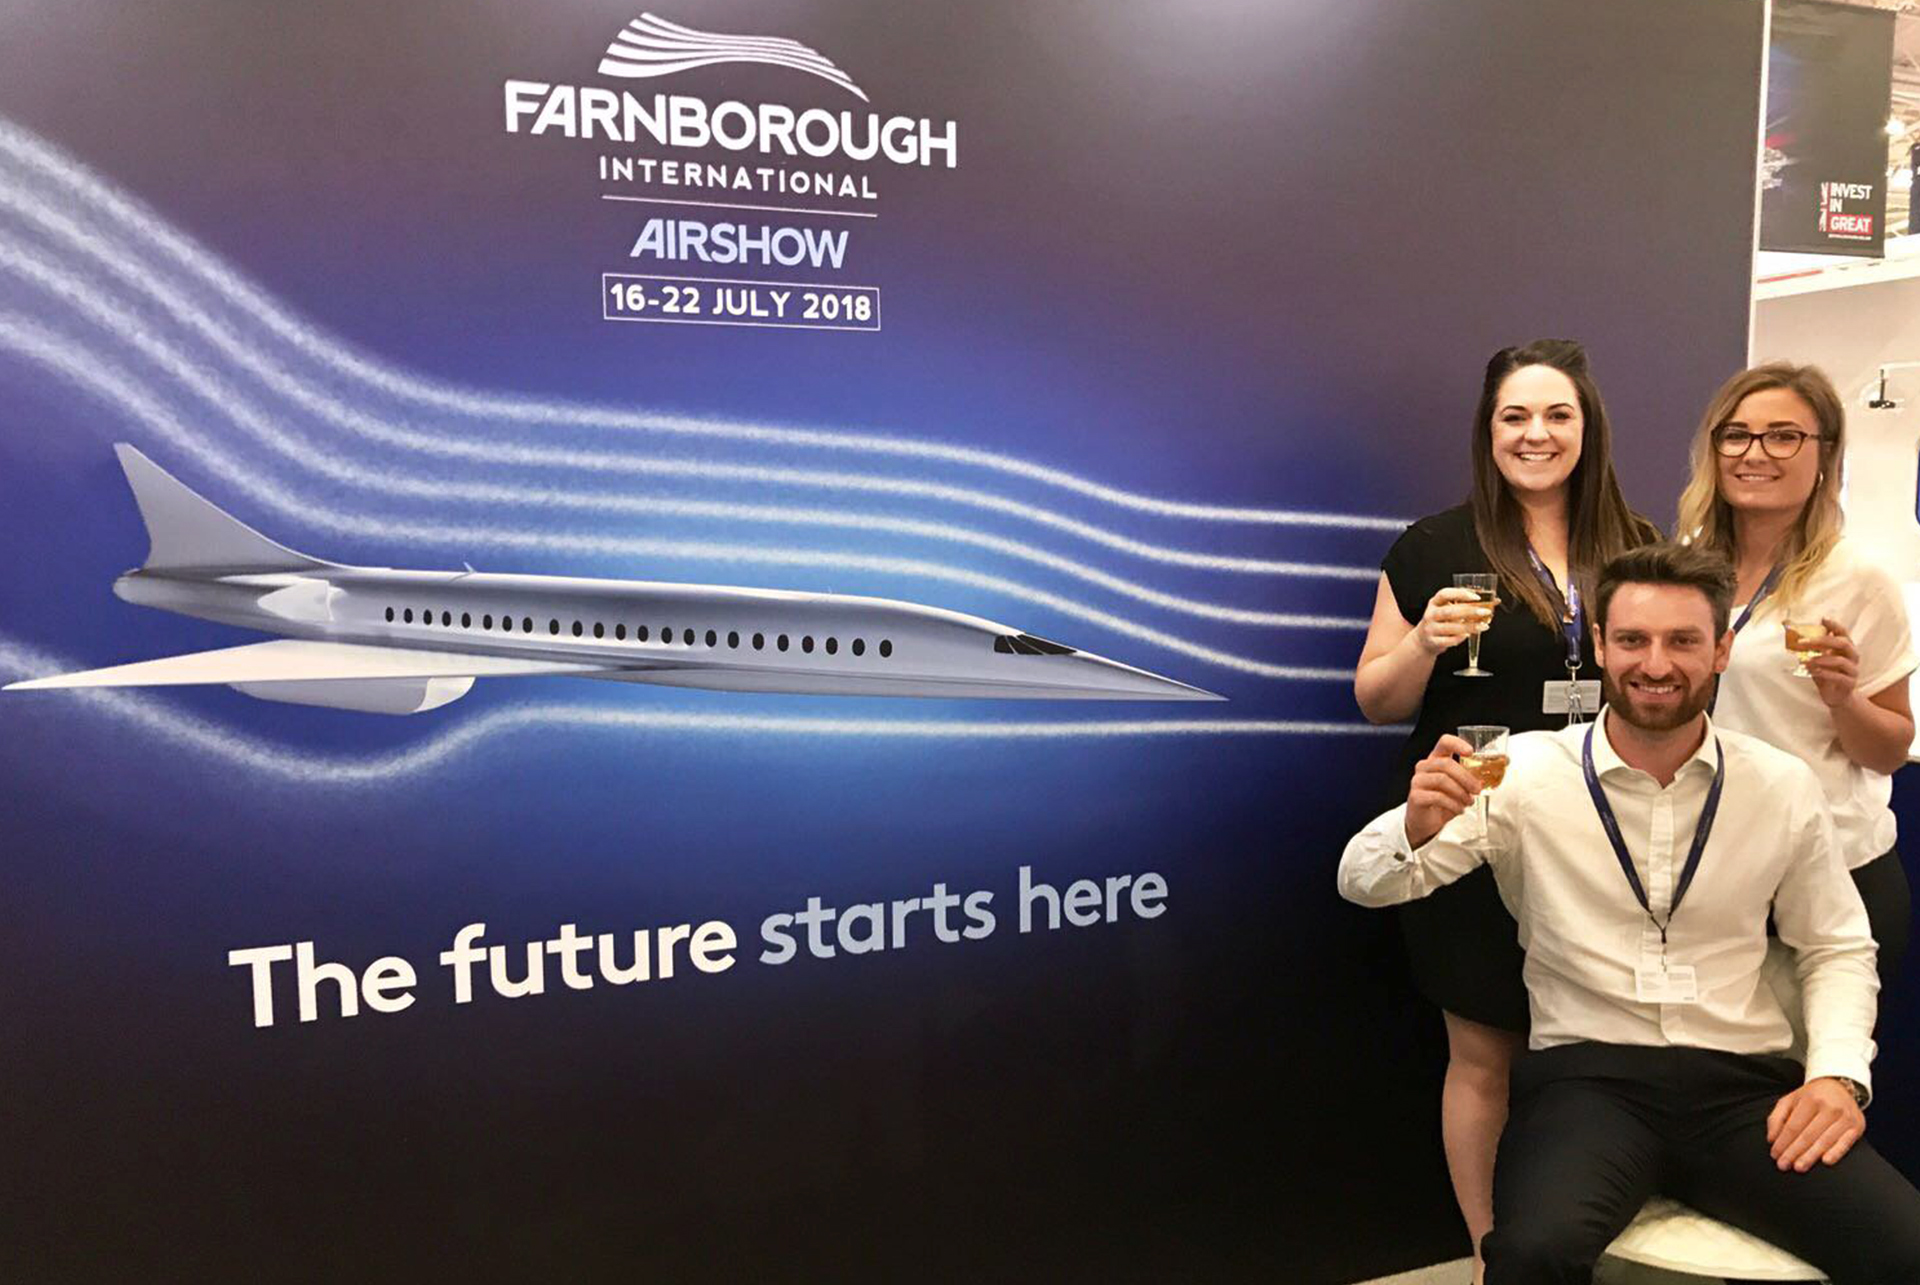 FIA Exhibition stand at Paris Airshow 2017 featuring large scale graphics by Ouno Creative, Farnborough.